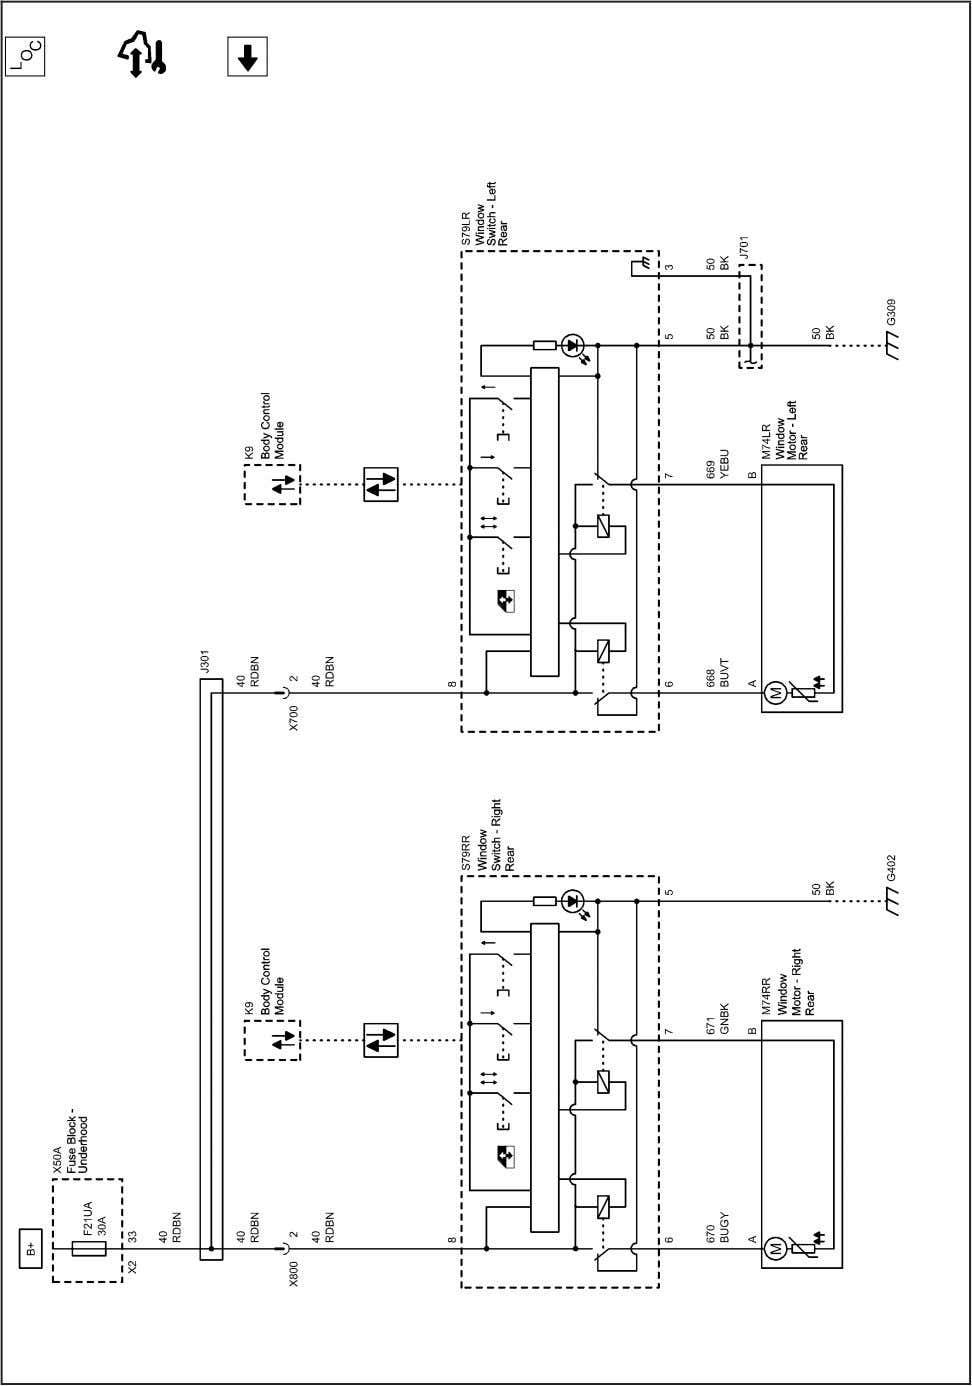 and Moveable Windows 4-7 2202804 Moveable Window Schematics (Power Windows, Rear Doors (AEQ)) 2010 - Cruze